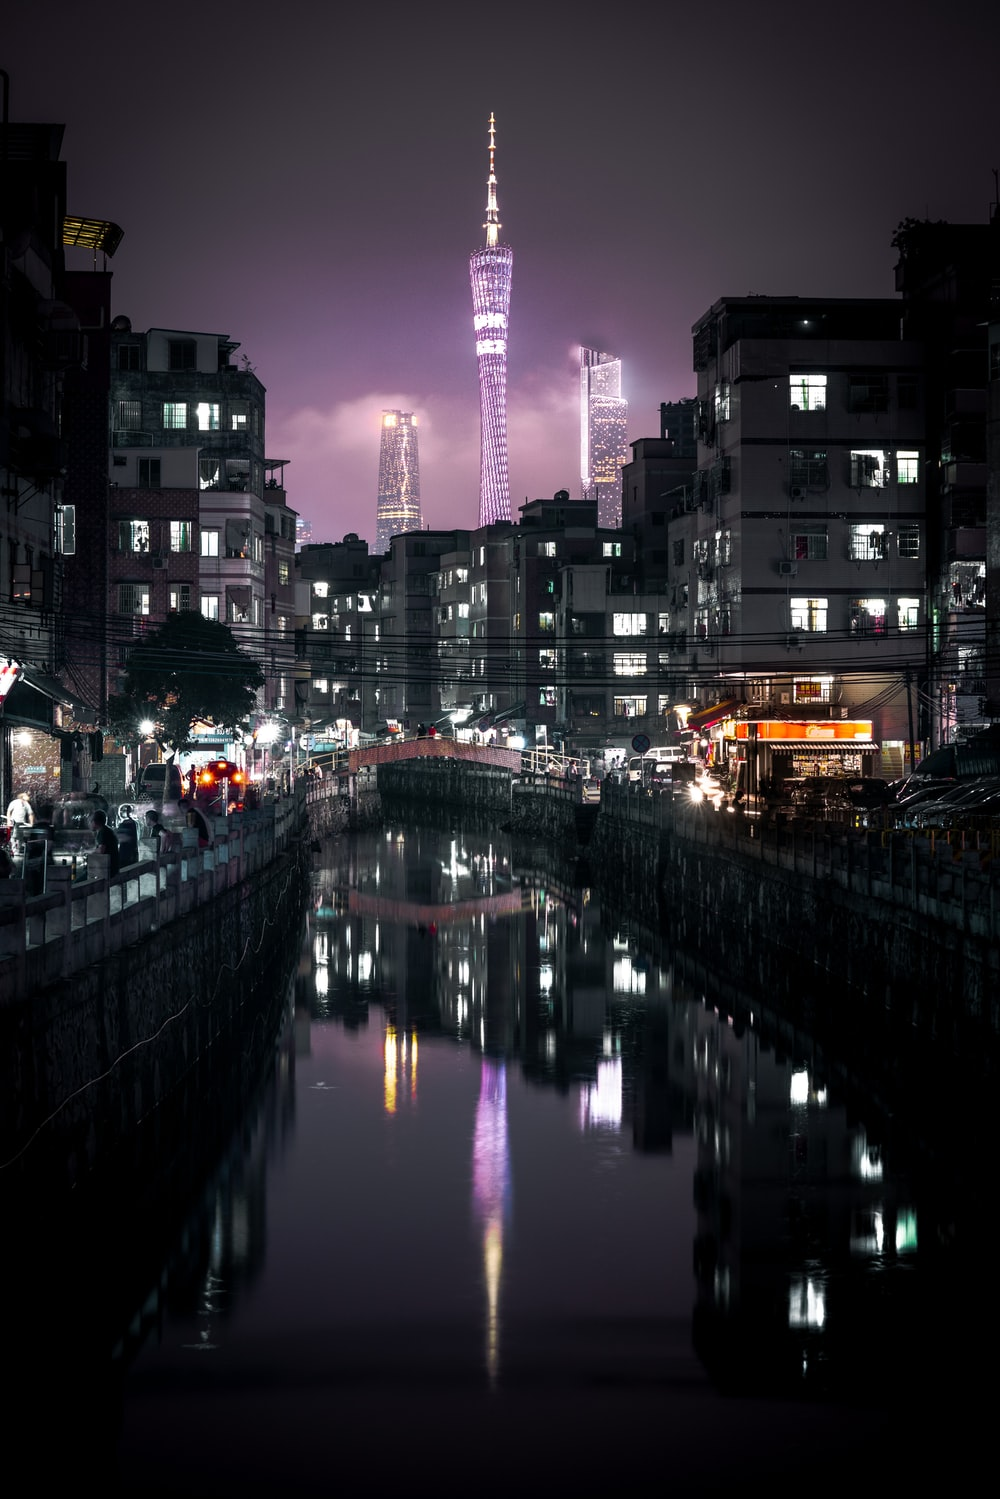 buildings reflected on water at night